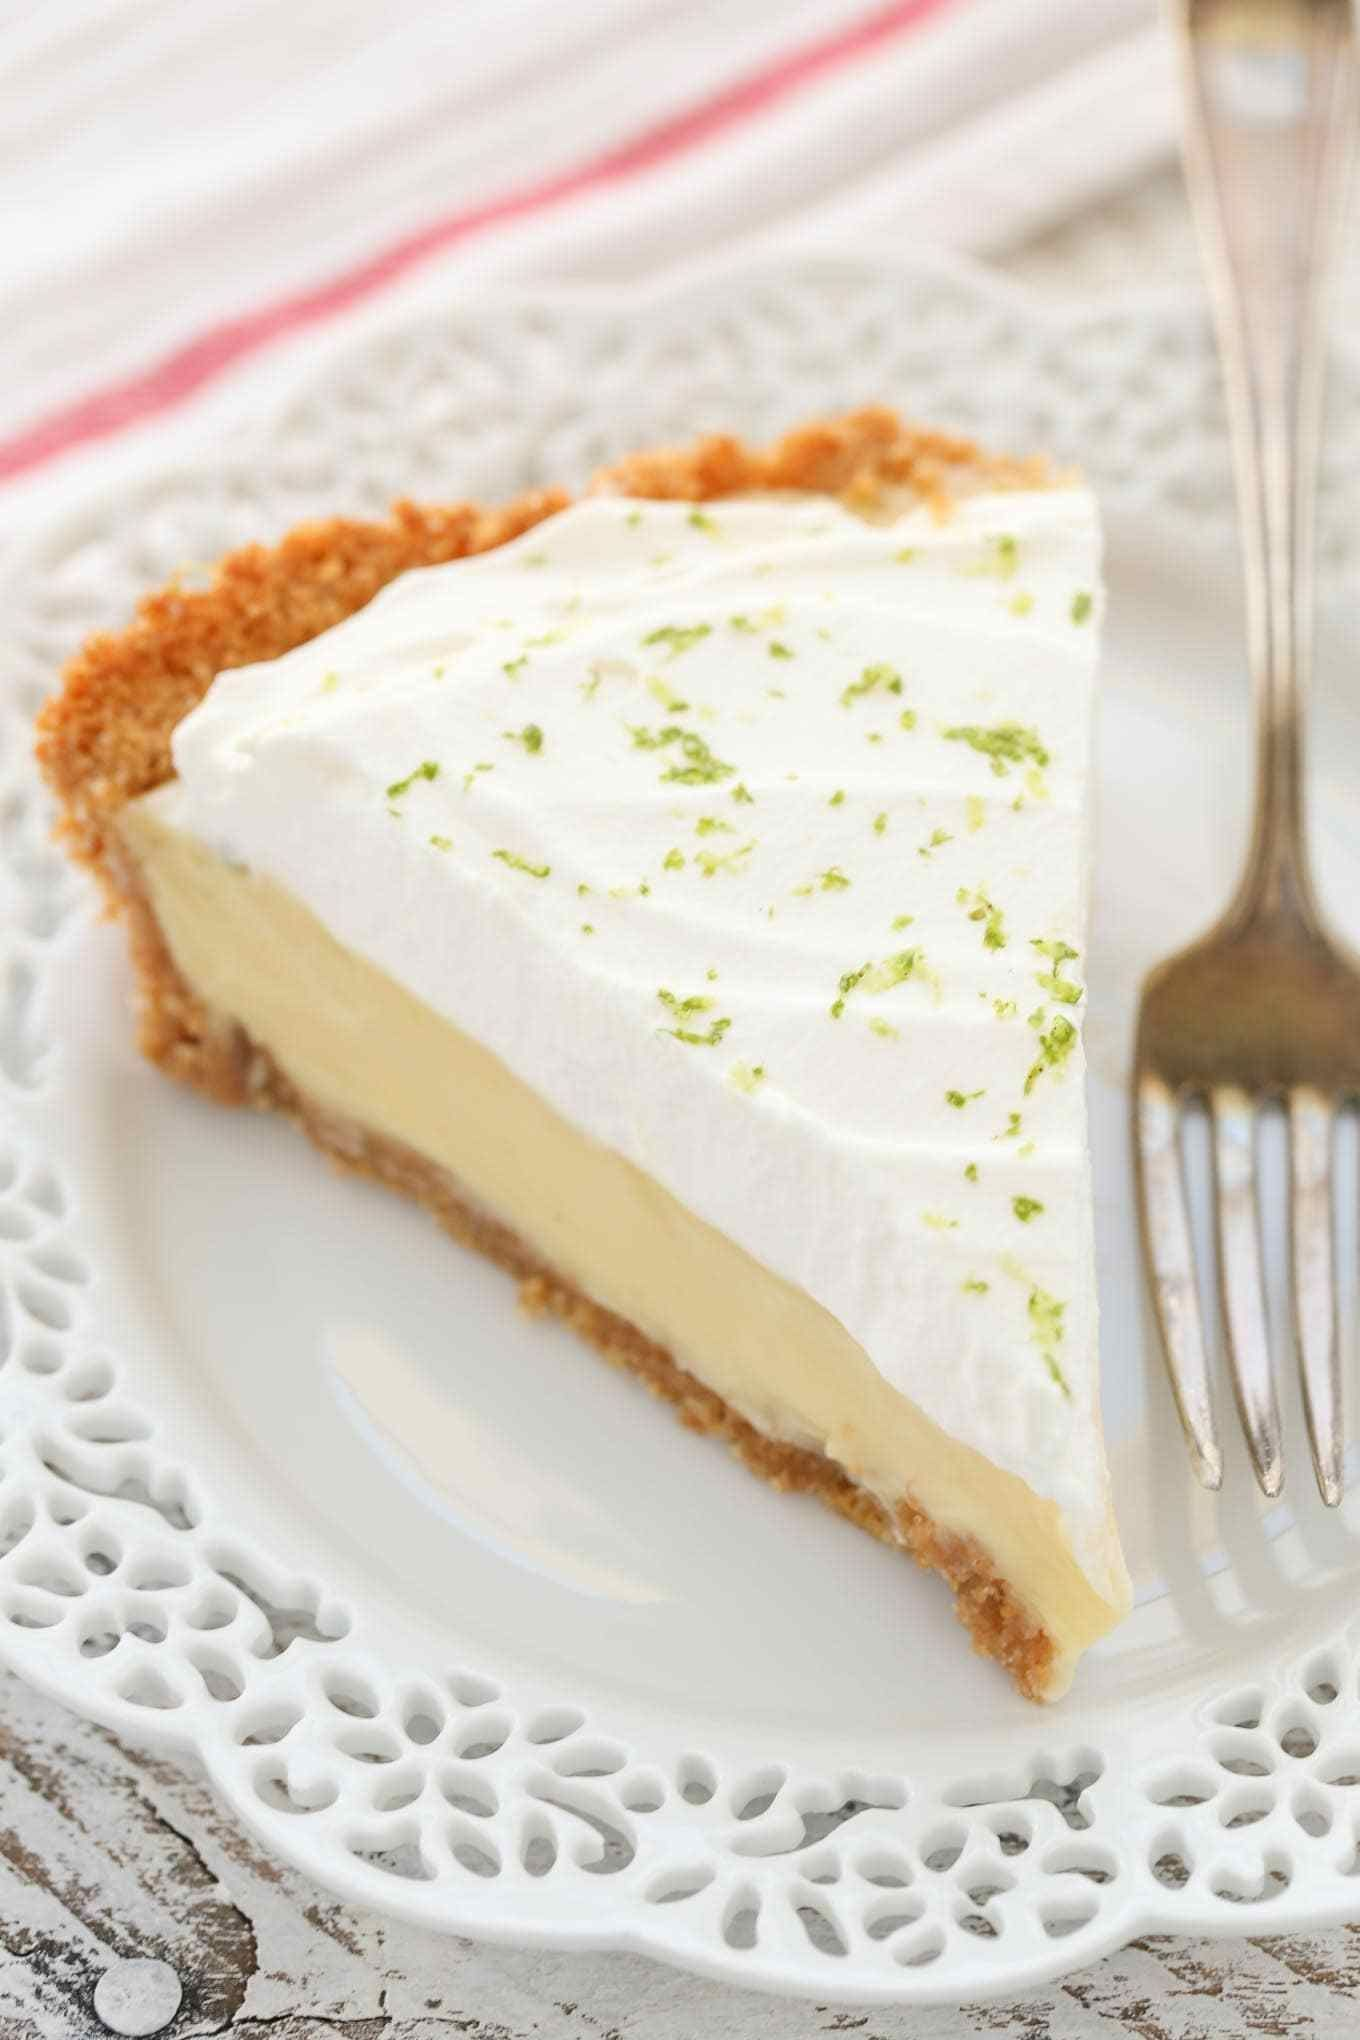 This Classic Key Lime Pie features an easy homemade graham cracker crust, a smooth and creamy key lime pie filling, and homemade whipped cream on top. The perfect dessert for key lime lovers! #homemadegrahamcrackercrust This Classic Key Lime Pie features an easy homemade graham cracker crust, a smooth and creamy key lime pie filling, and homemade whipped cream on top. The perfect dessert for key lime lovers! #homemadegrahamcrackercrust This Classic Key Lime Pie features an easy homemade graha #homemadegrahamcrackercrust